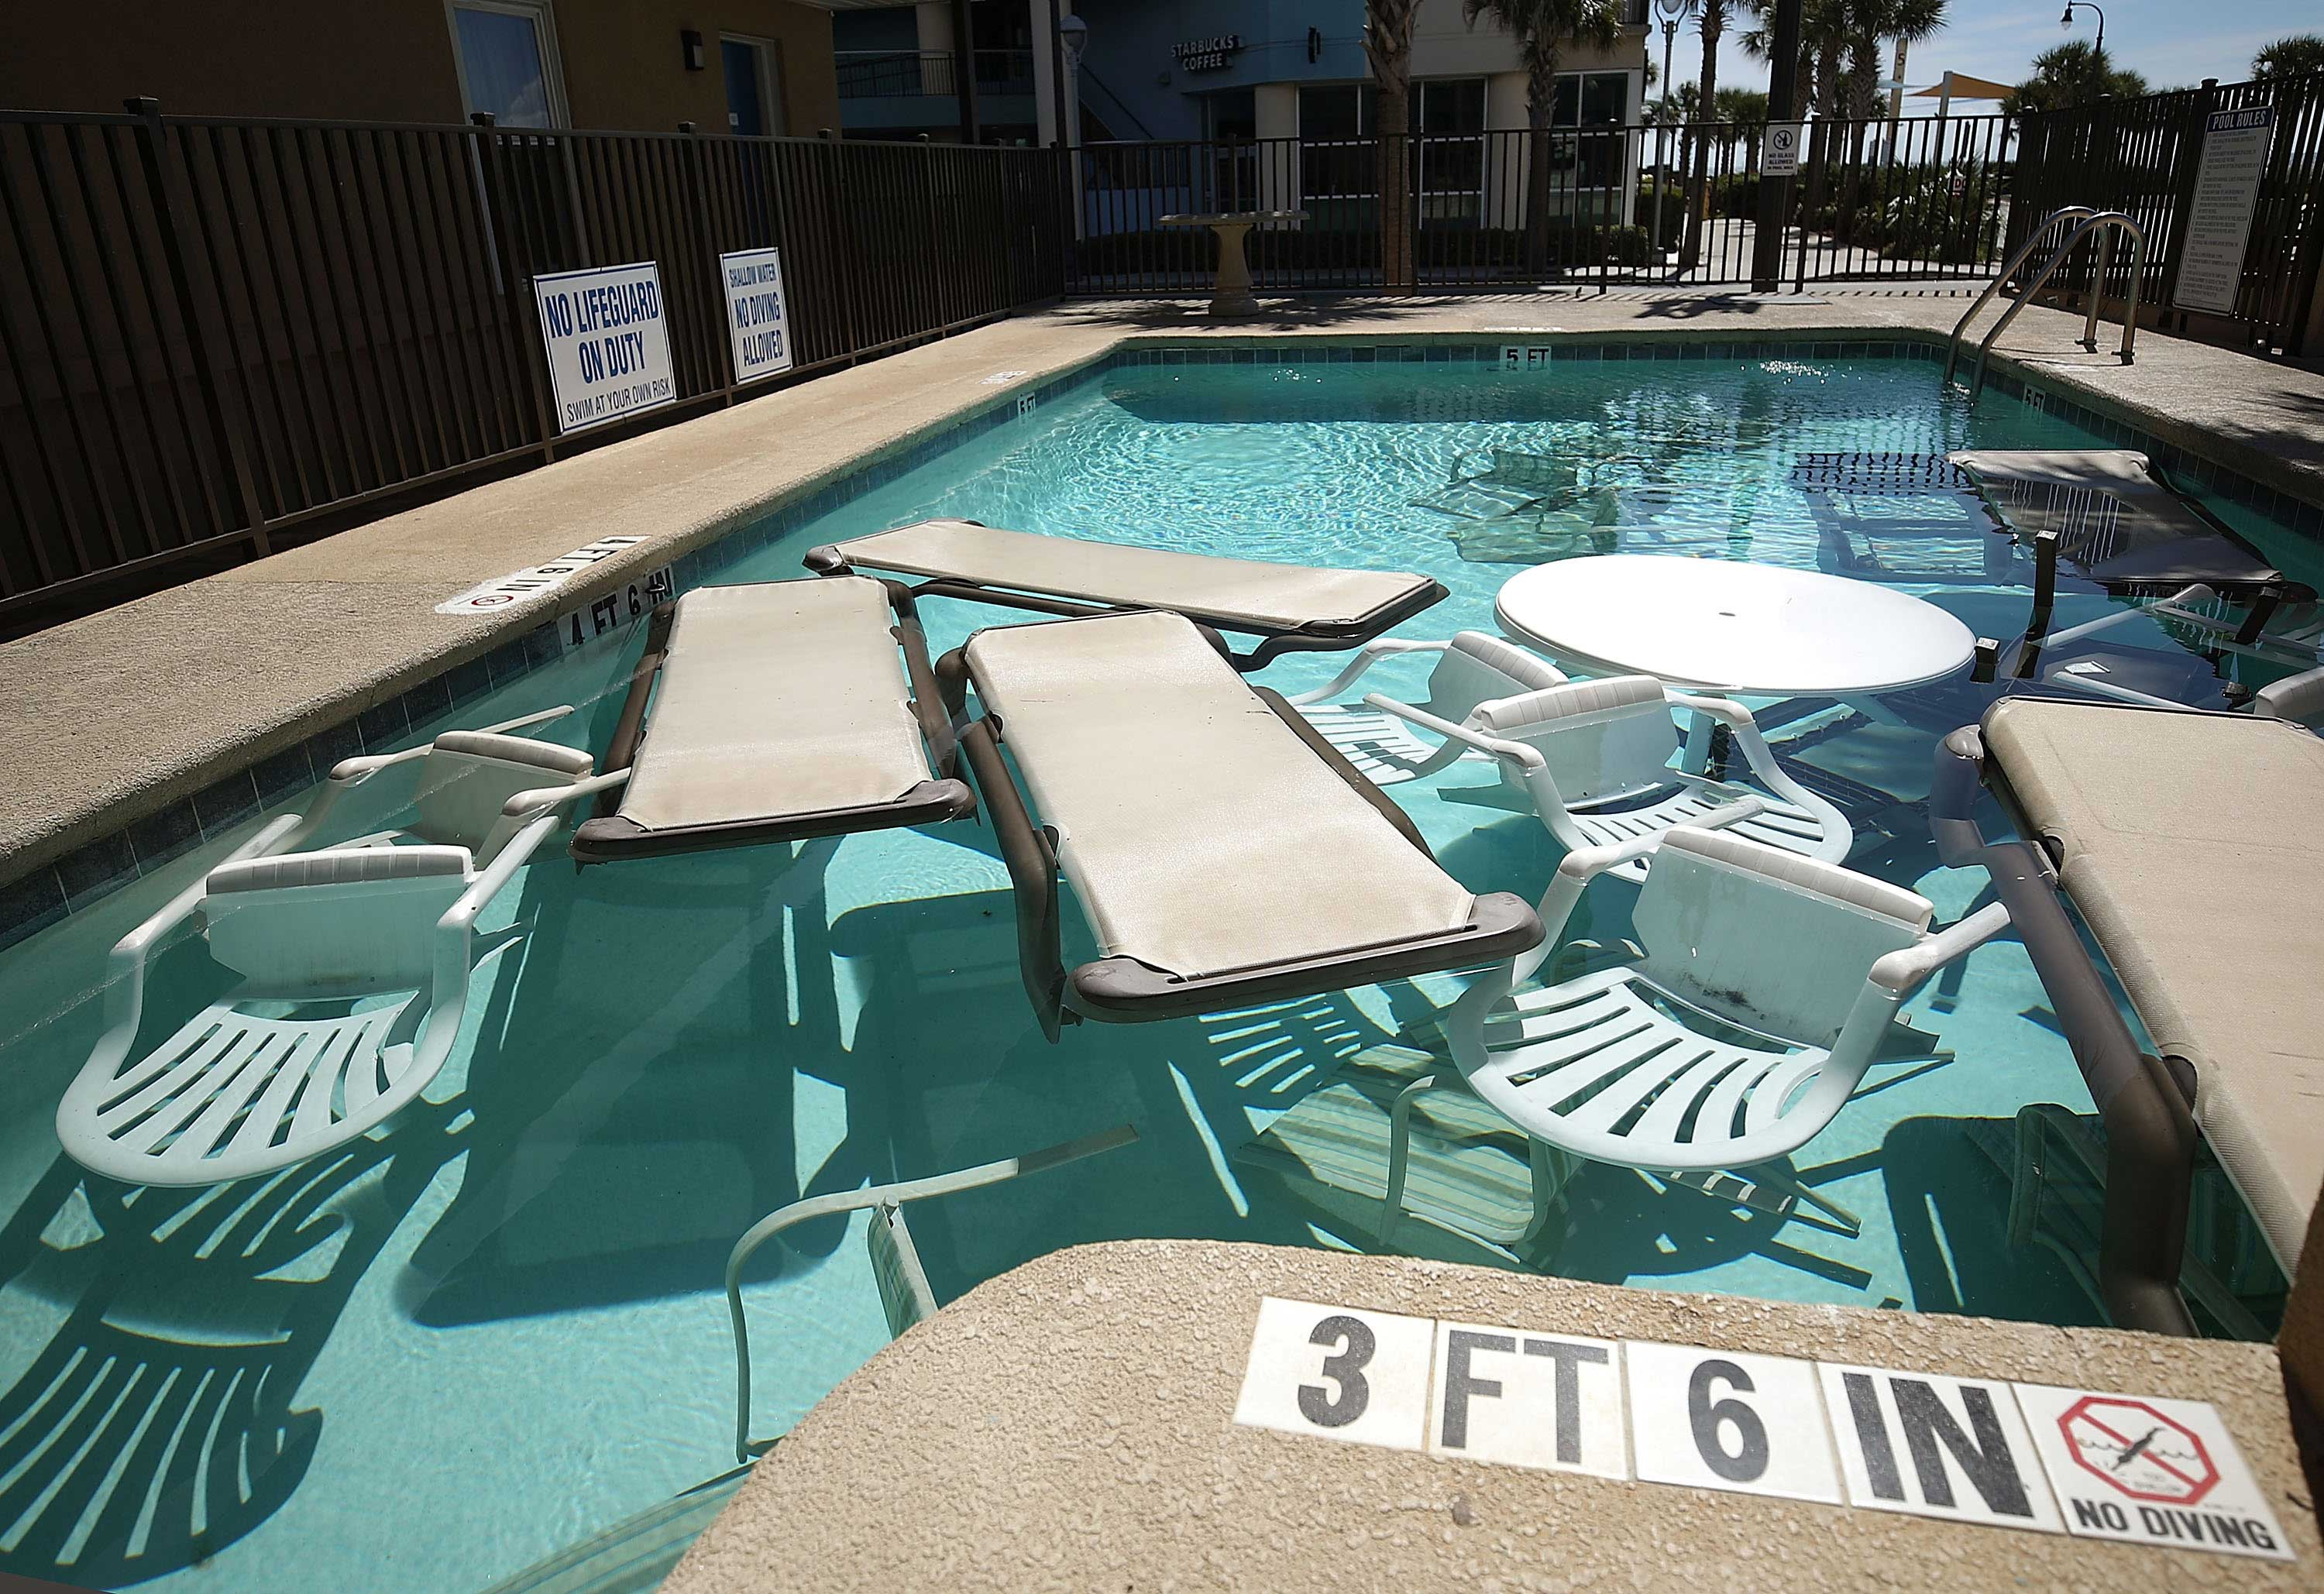 <div class='meta'><div class='origin-logo' data-origin='none'></div><span class='caption-text' data-credit='Mark Wilson/Getty Images'>Poolside furniture is placed in the pool of a hotel ahead of the approaching Hurricane Florence on September 12, 2018.</span></div>